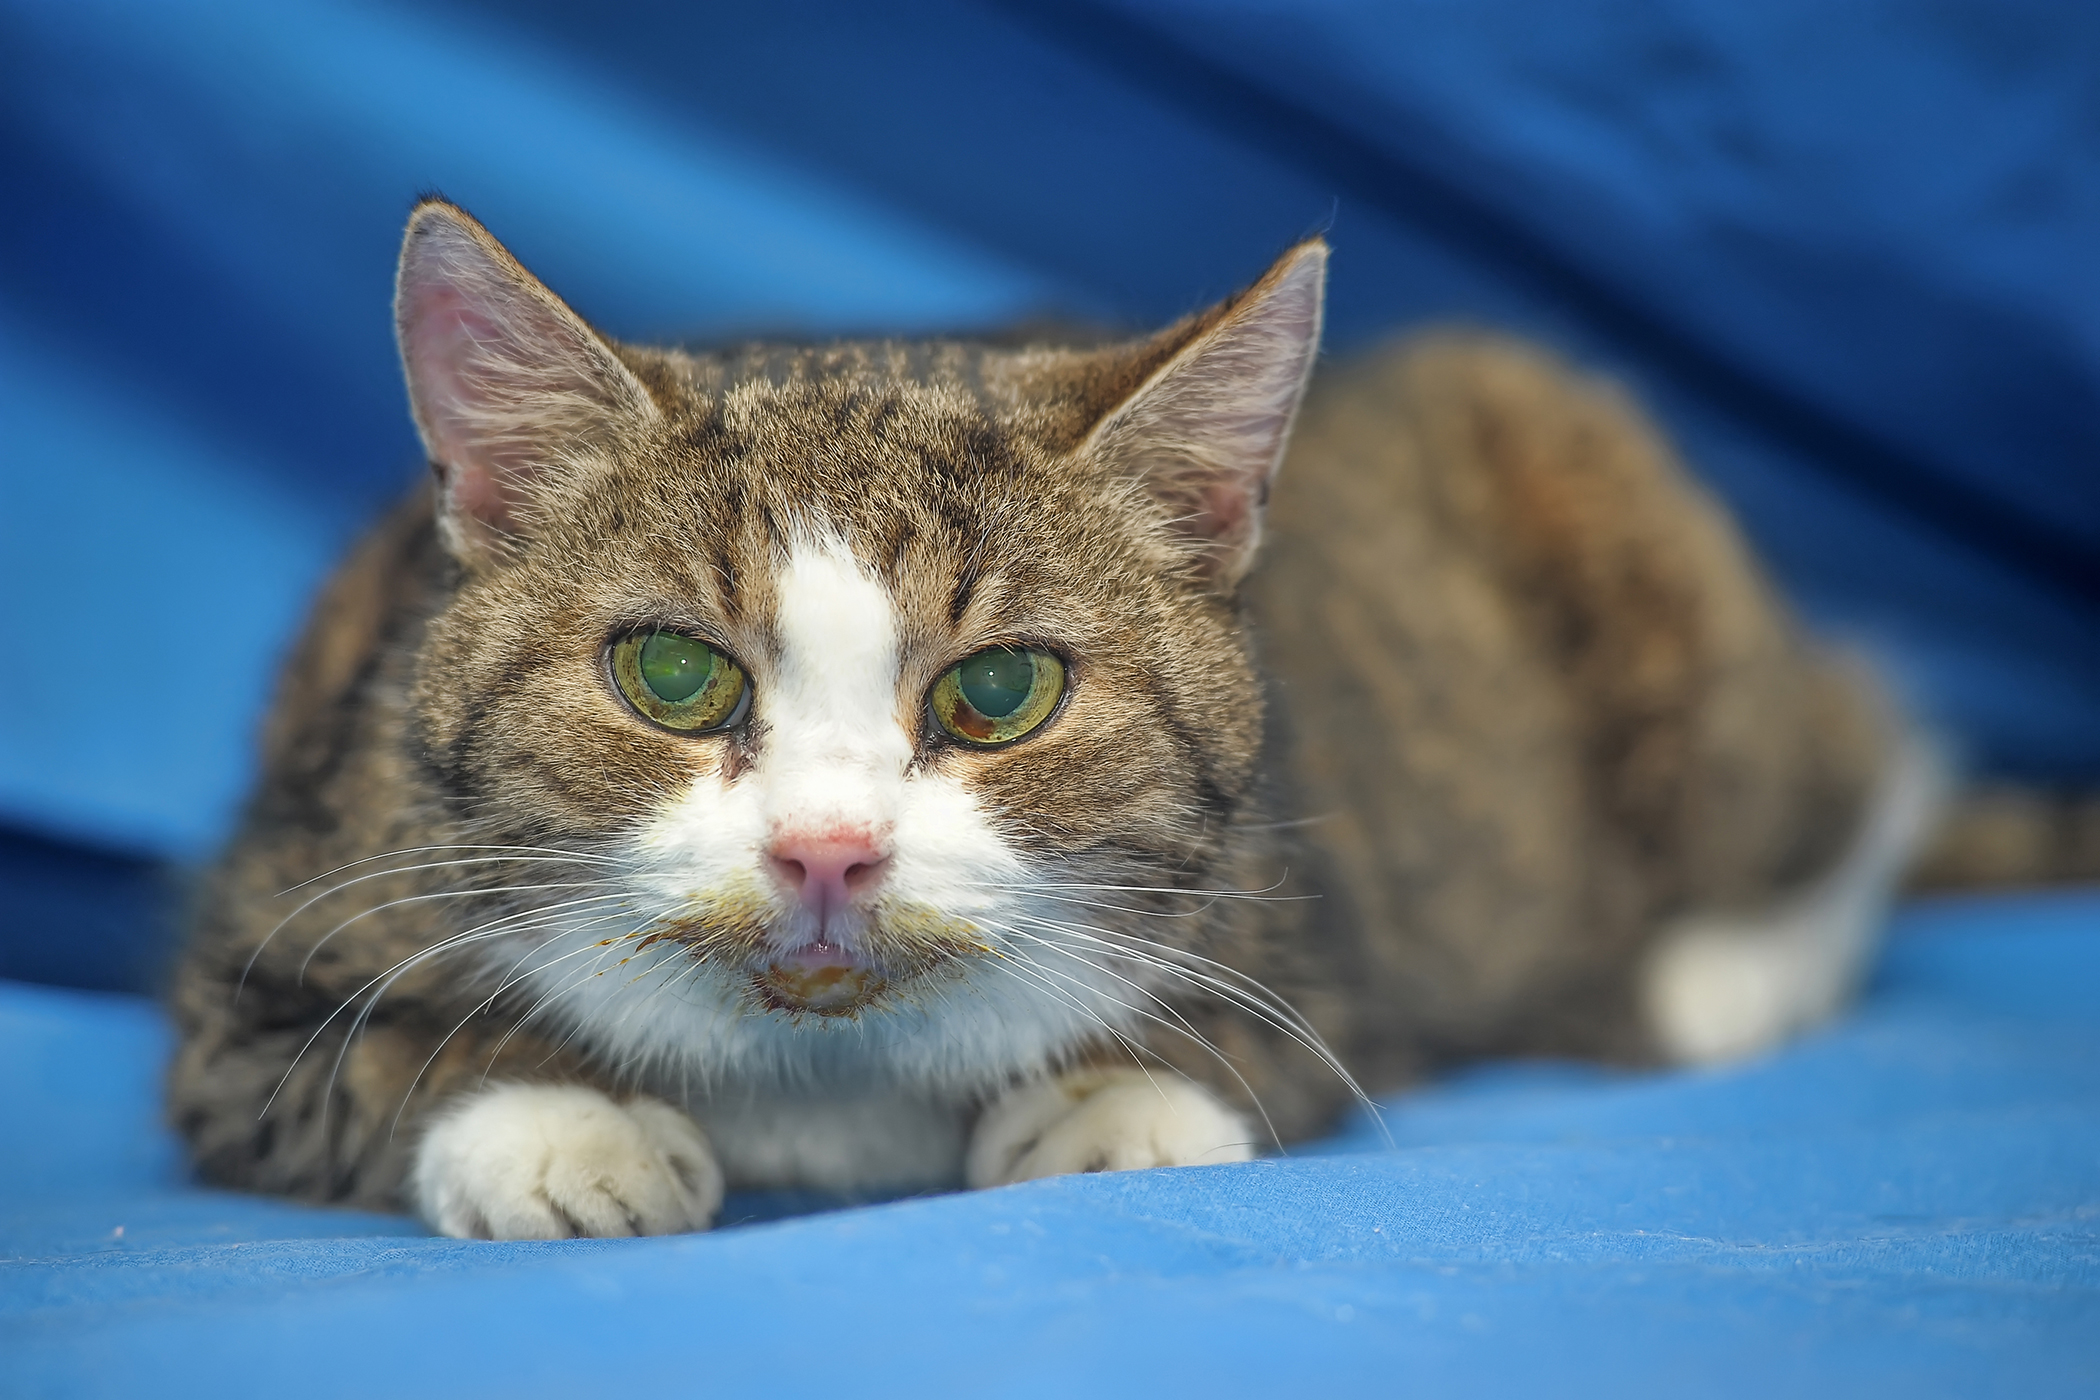 Adrenal Gland Cancer in Cats